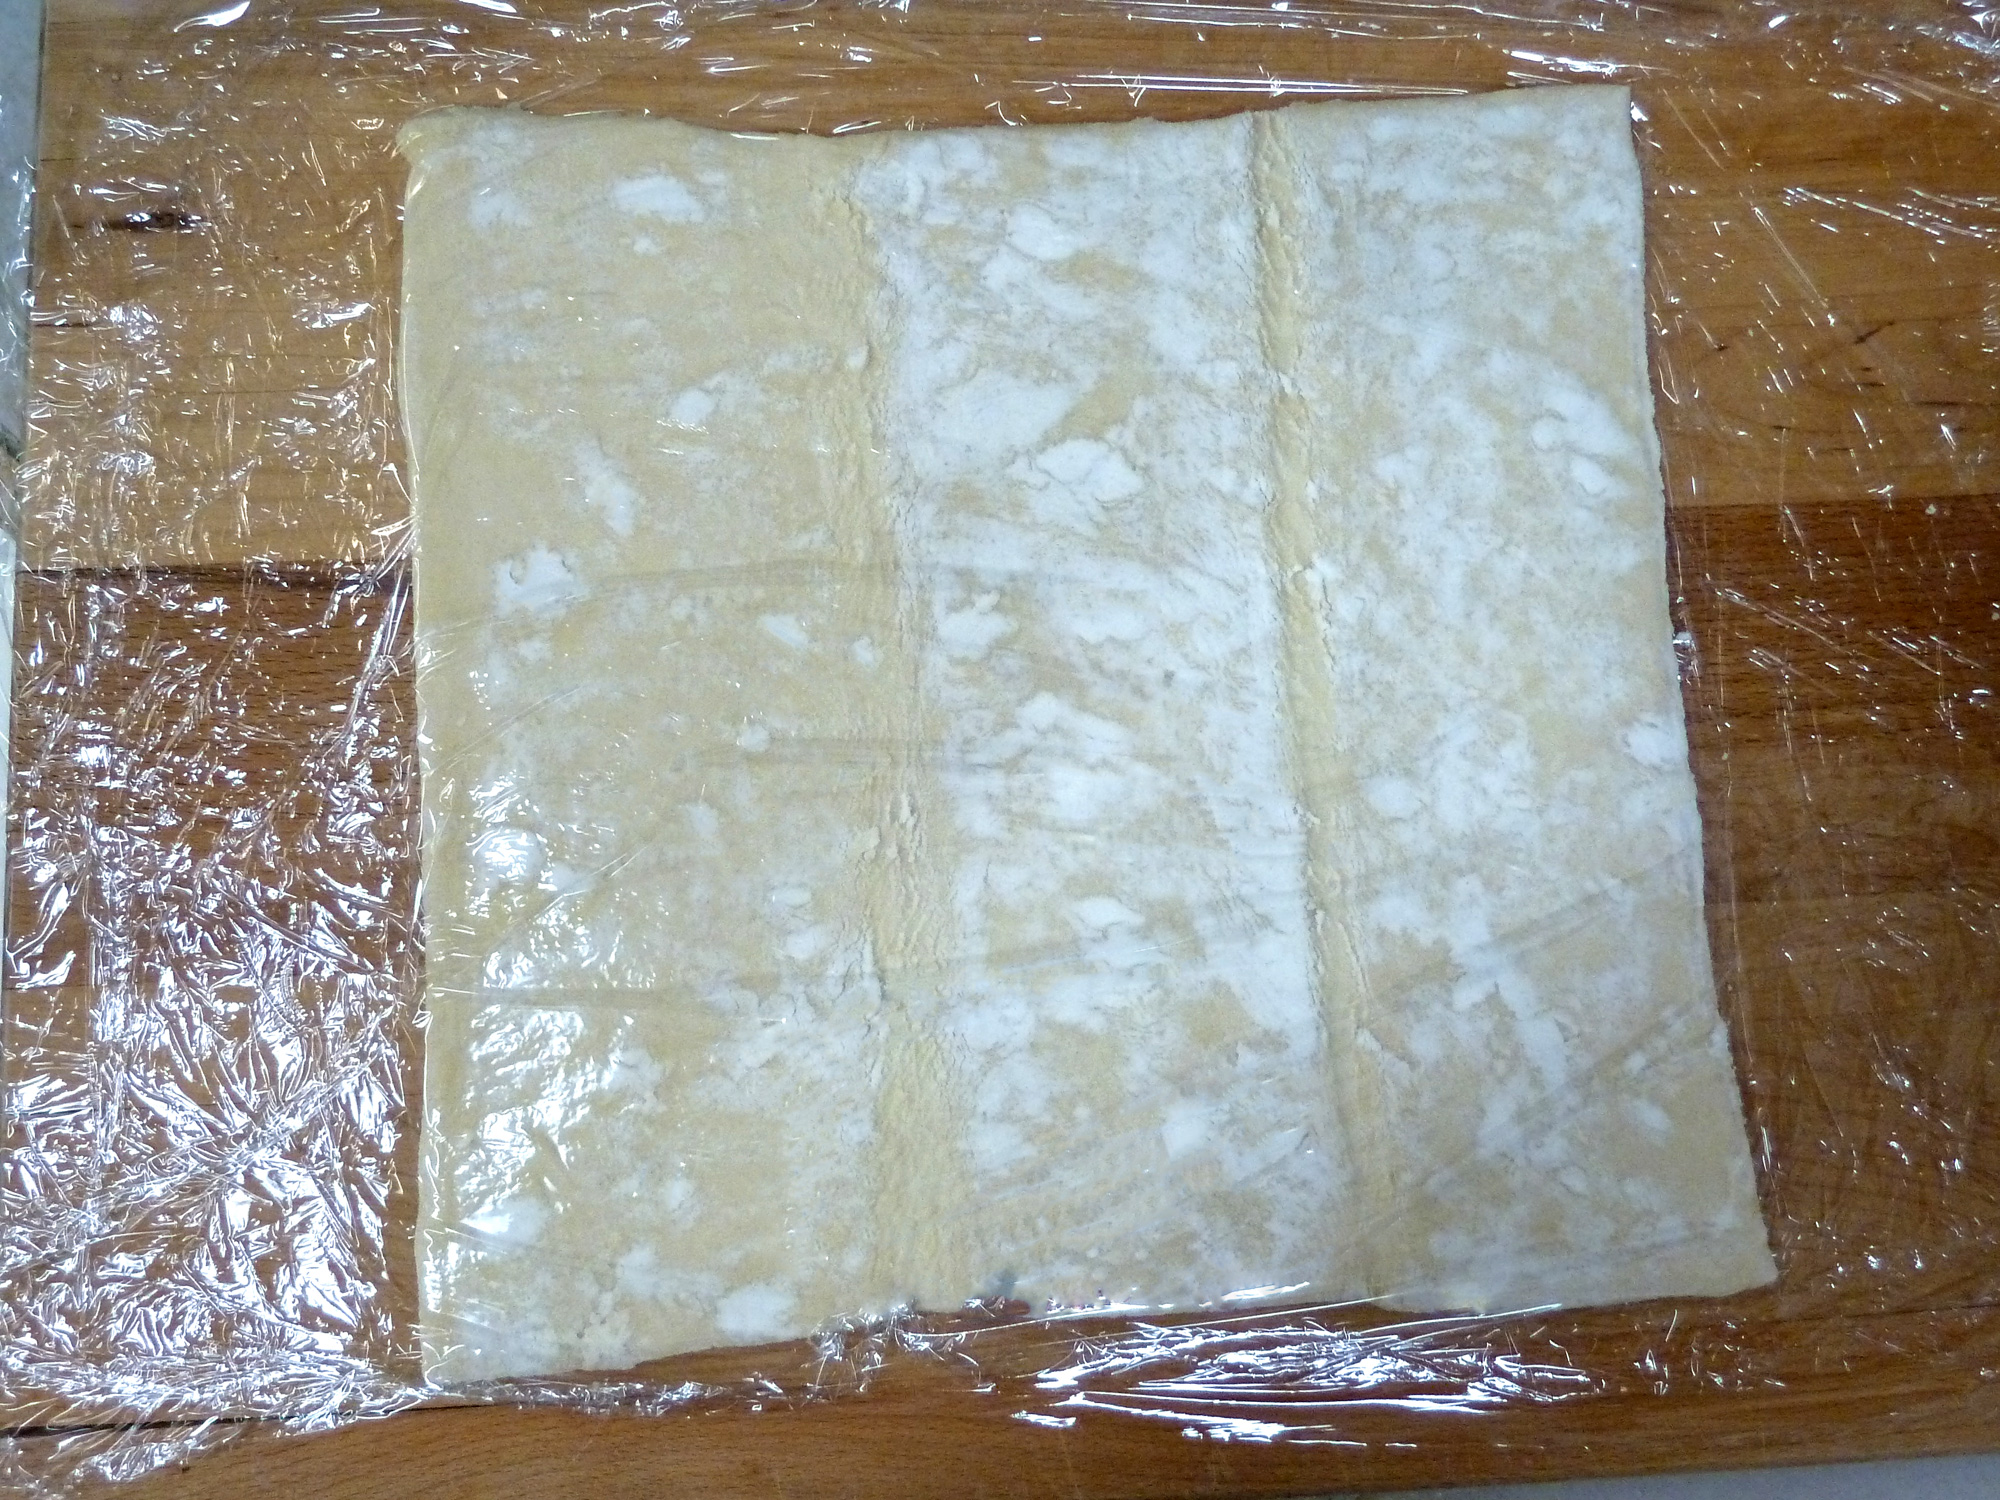 Place the puff pastry between two sheets of plastic wrap.